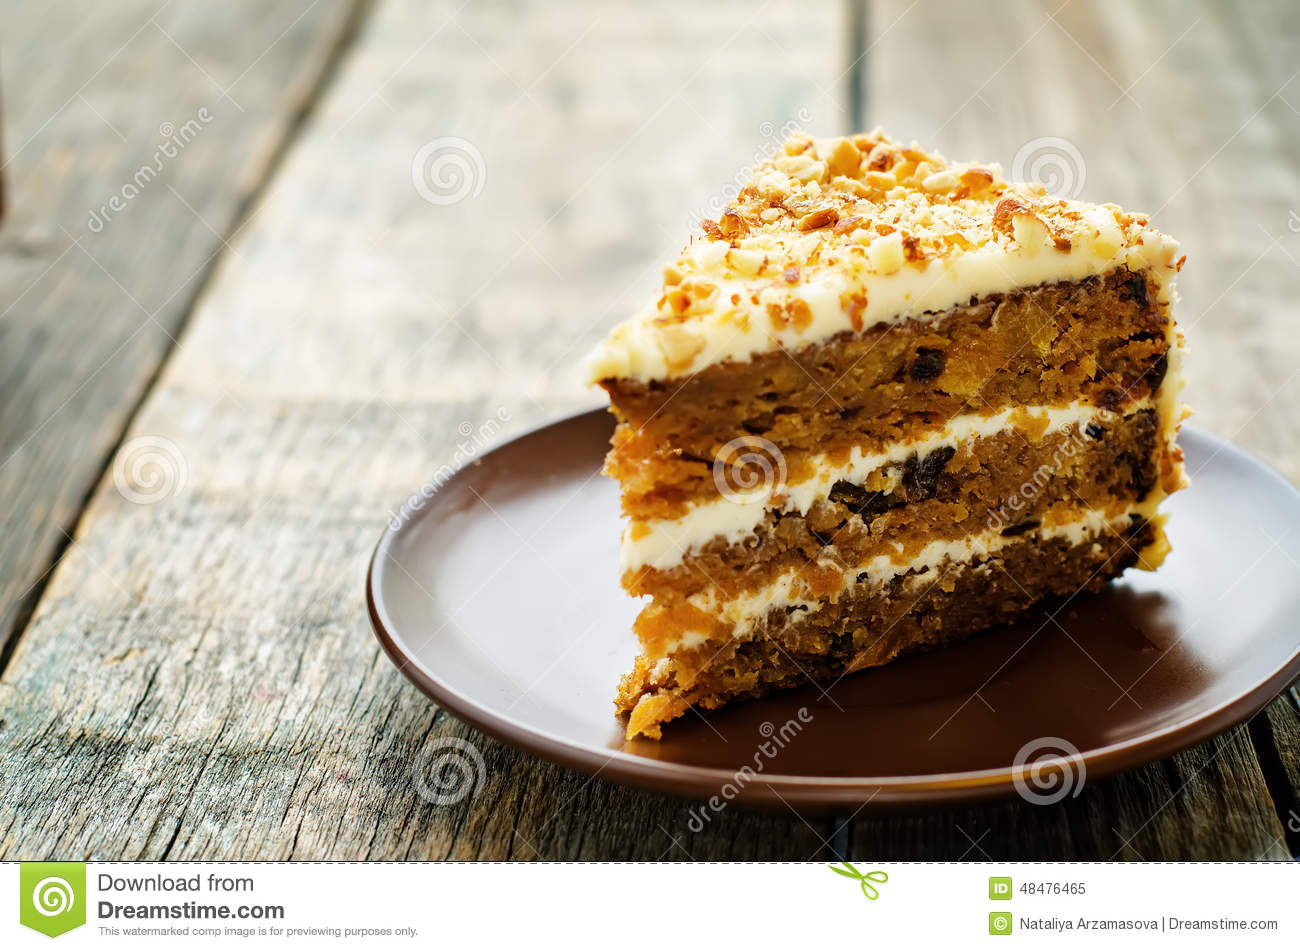 Carbohydrates In Carrot Cake